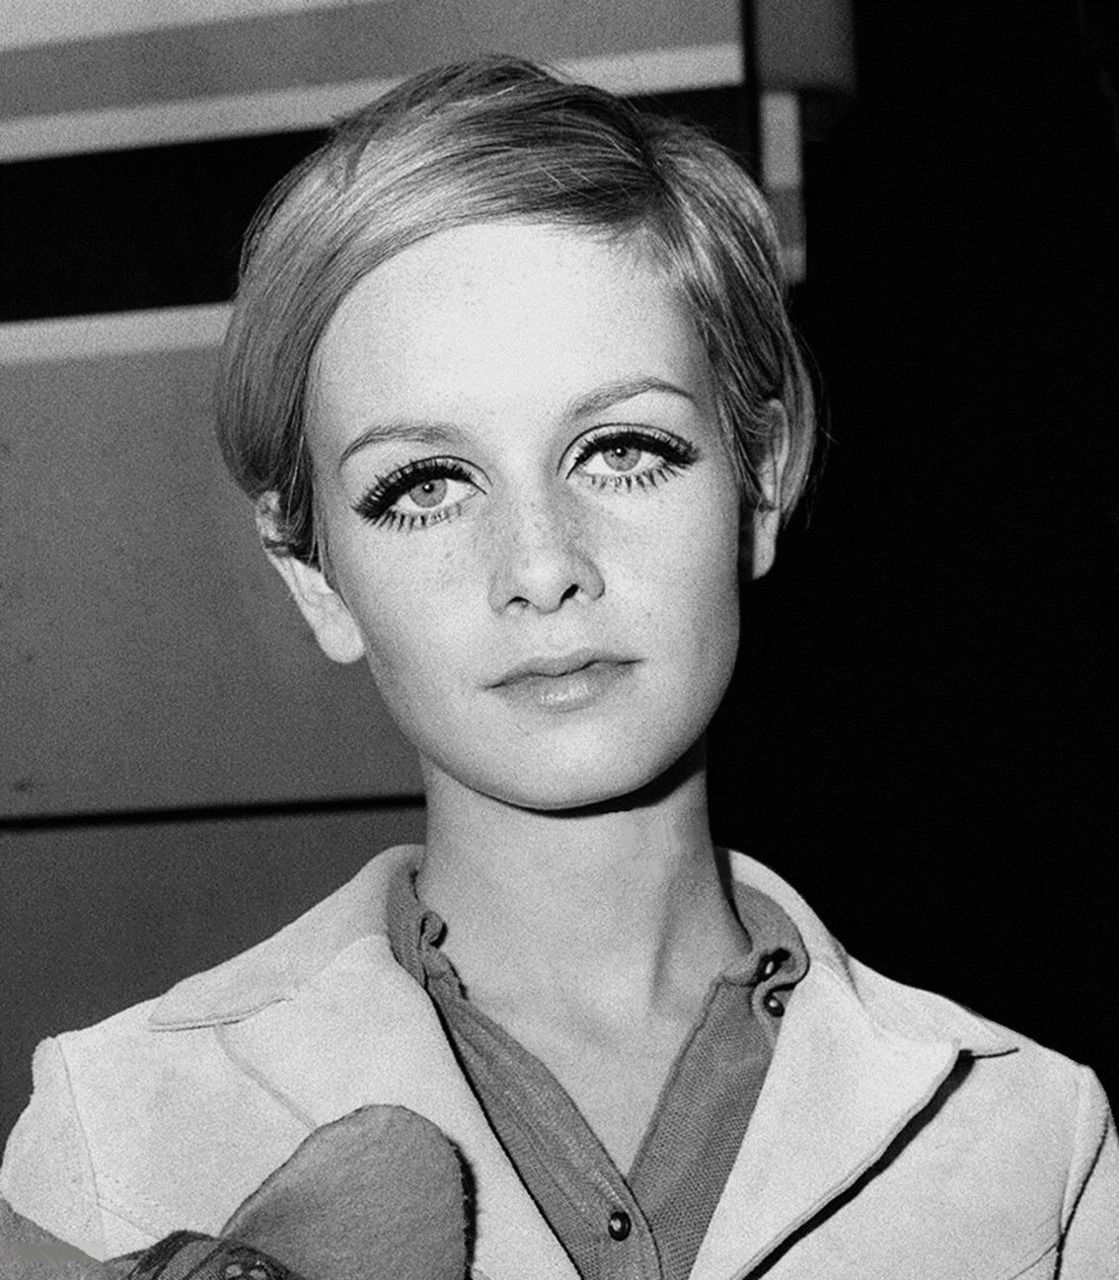 Twiggy, at Heathrow Airport, London before her journey to